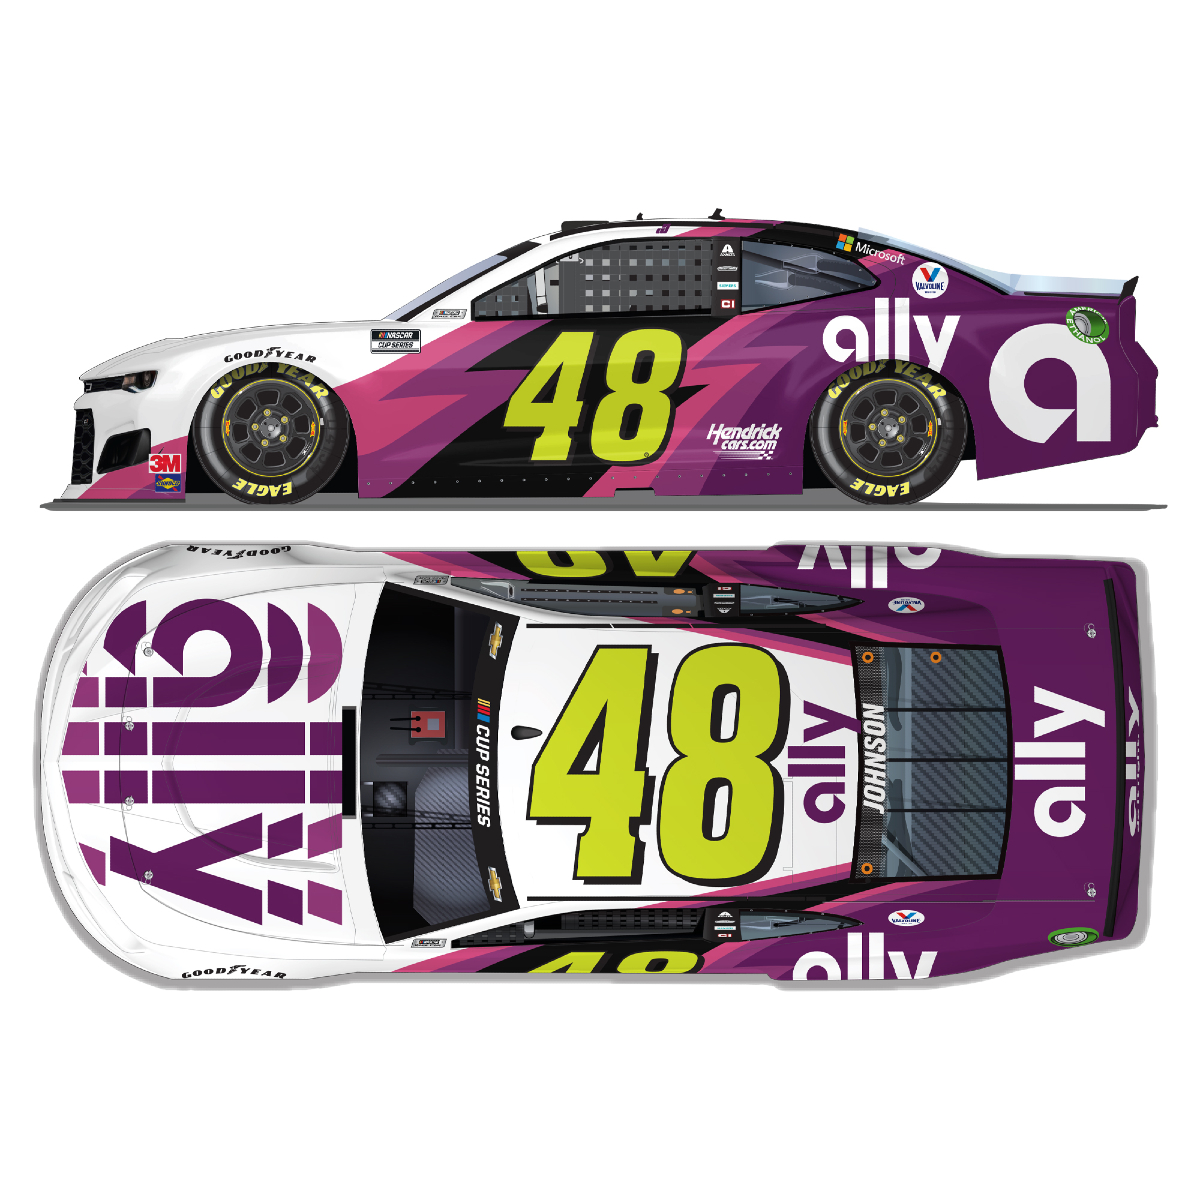 Jimmie Johnson No. 48 Ally Texas NASCAR Cup Series 1:64 - Die Cast